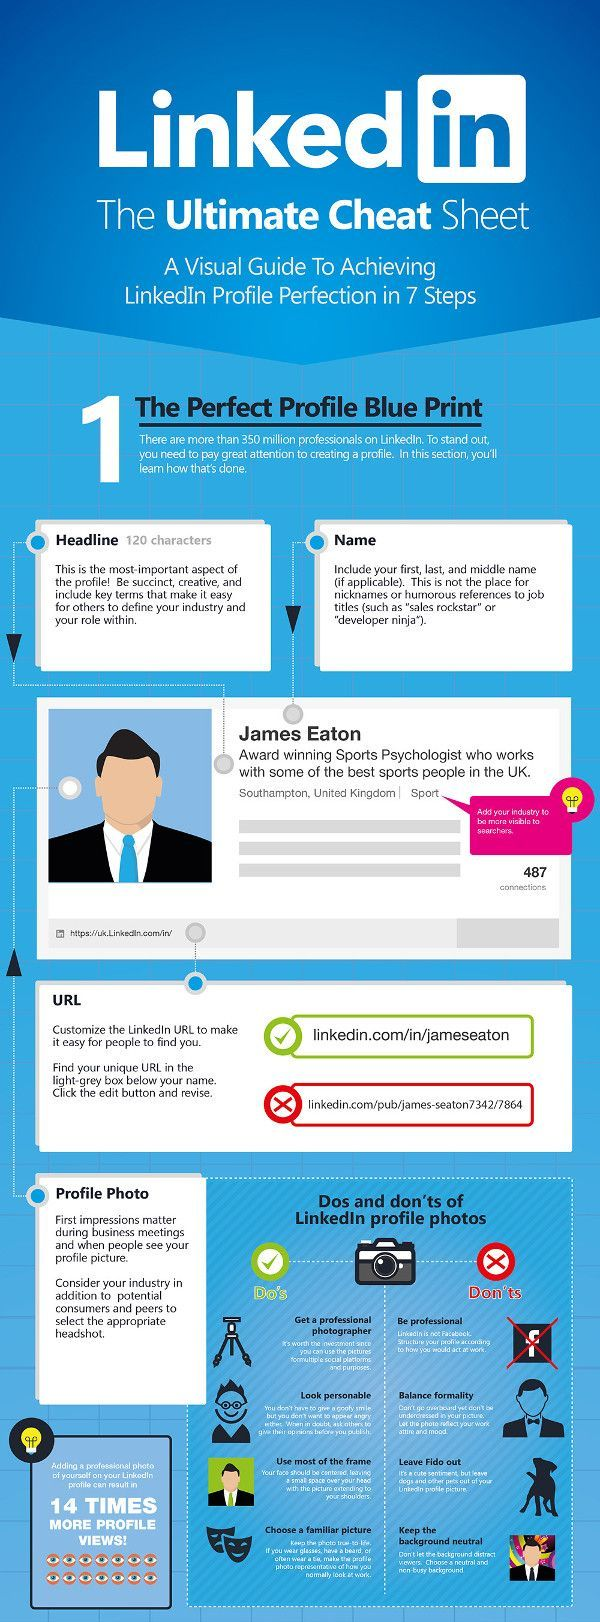 LinkedIn is an ideal platform for business-oriented endeavours, but do you know how to get the most out of it 2017? Check out The Ultimate LinkedIn Cheat Sheet [Infographic]  - @MarketingProfs